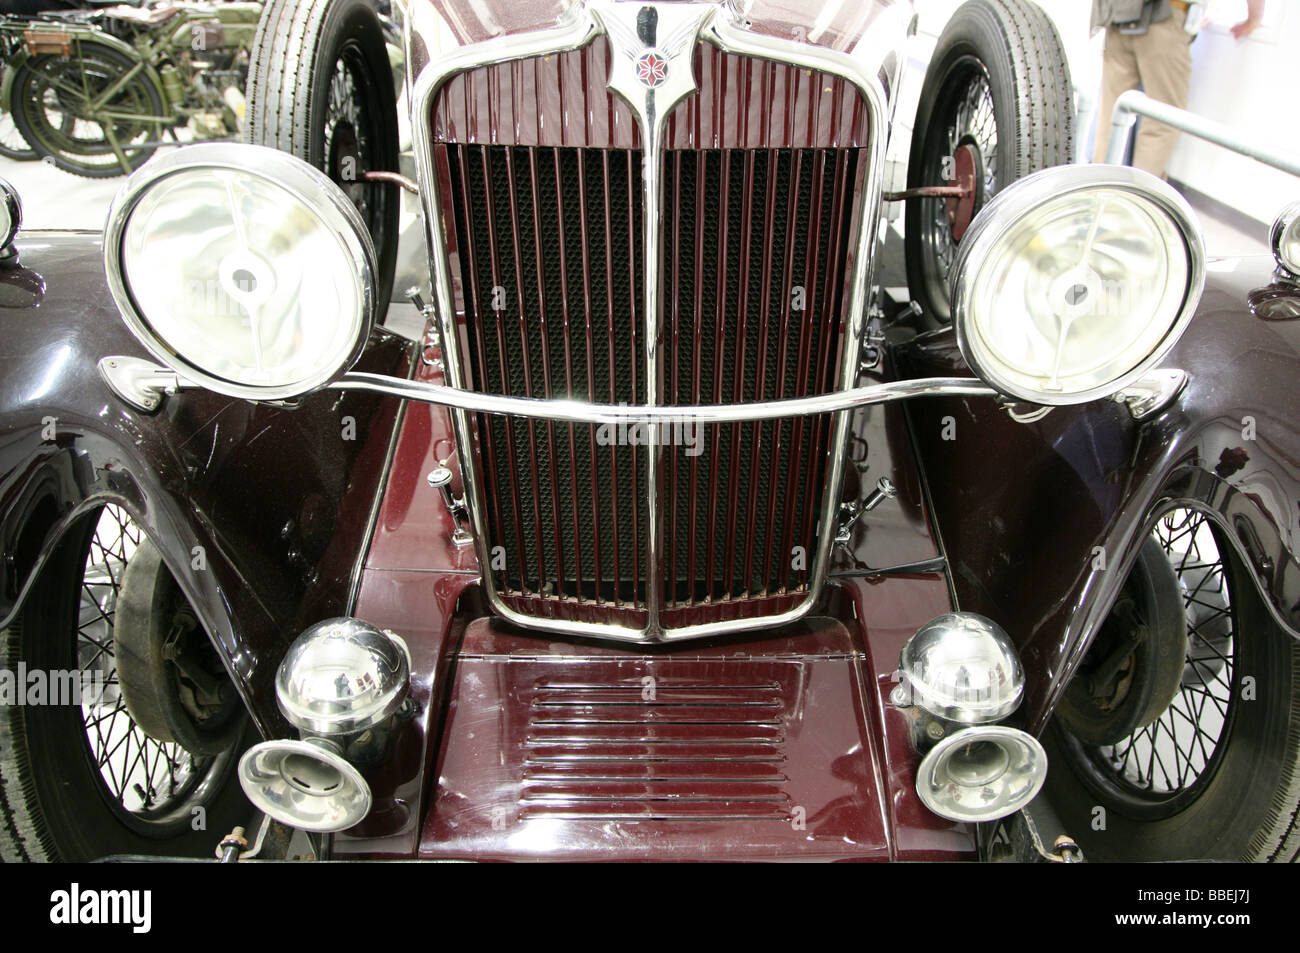 1931 Star Comet saloon car at Black Country Living Museum - Stock Image